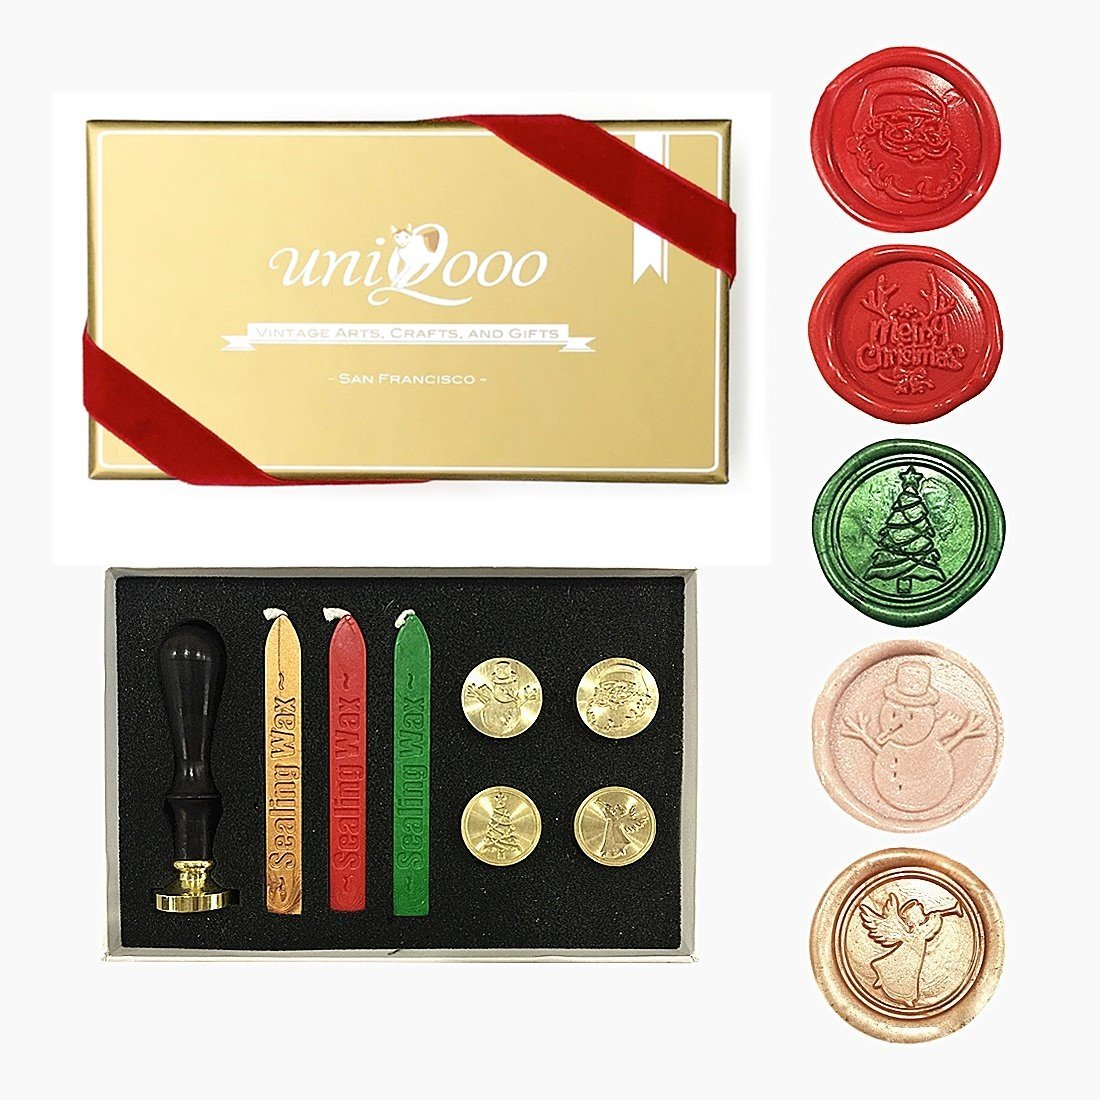 UNIQOOO Arts & Crafts Christmas Wax Seal Stamp Kit, 5 Stamps - Merry Christmas, Santa Claus, Xmas Tree,Snowman, Angel, 3 Wick Wax Sticks-Great for Holiday Decorations, Postcards, Invitations, Gift by UNIQOOO